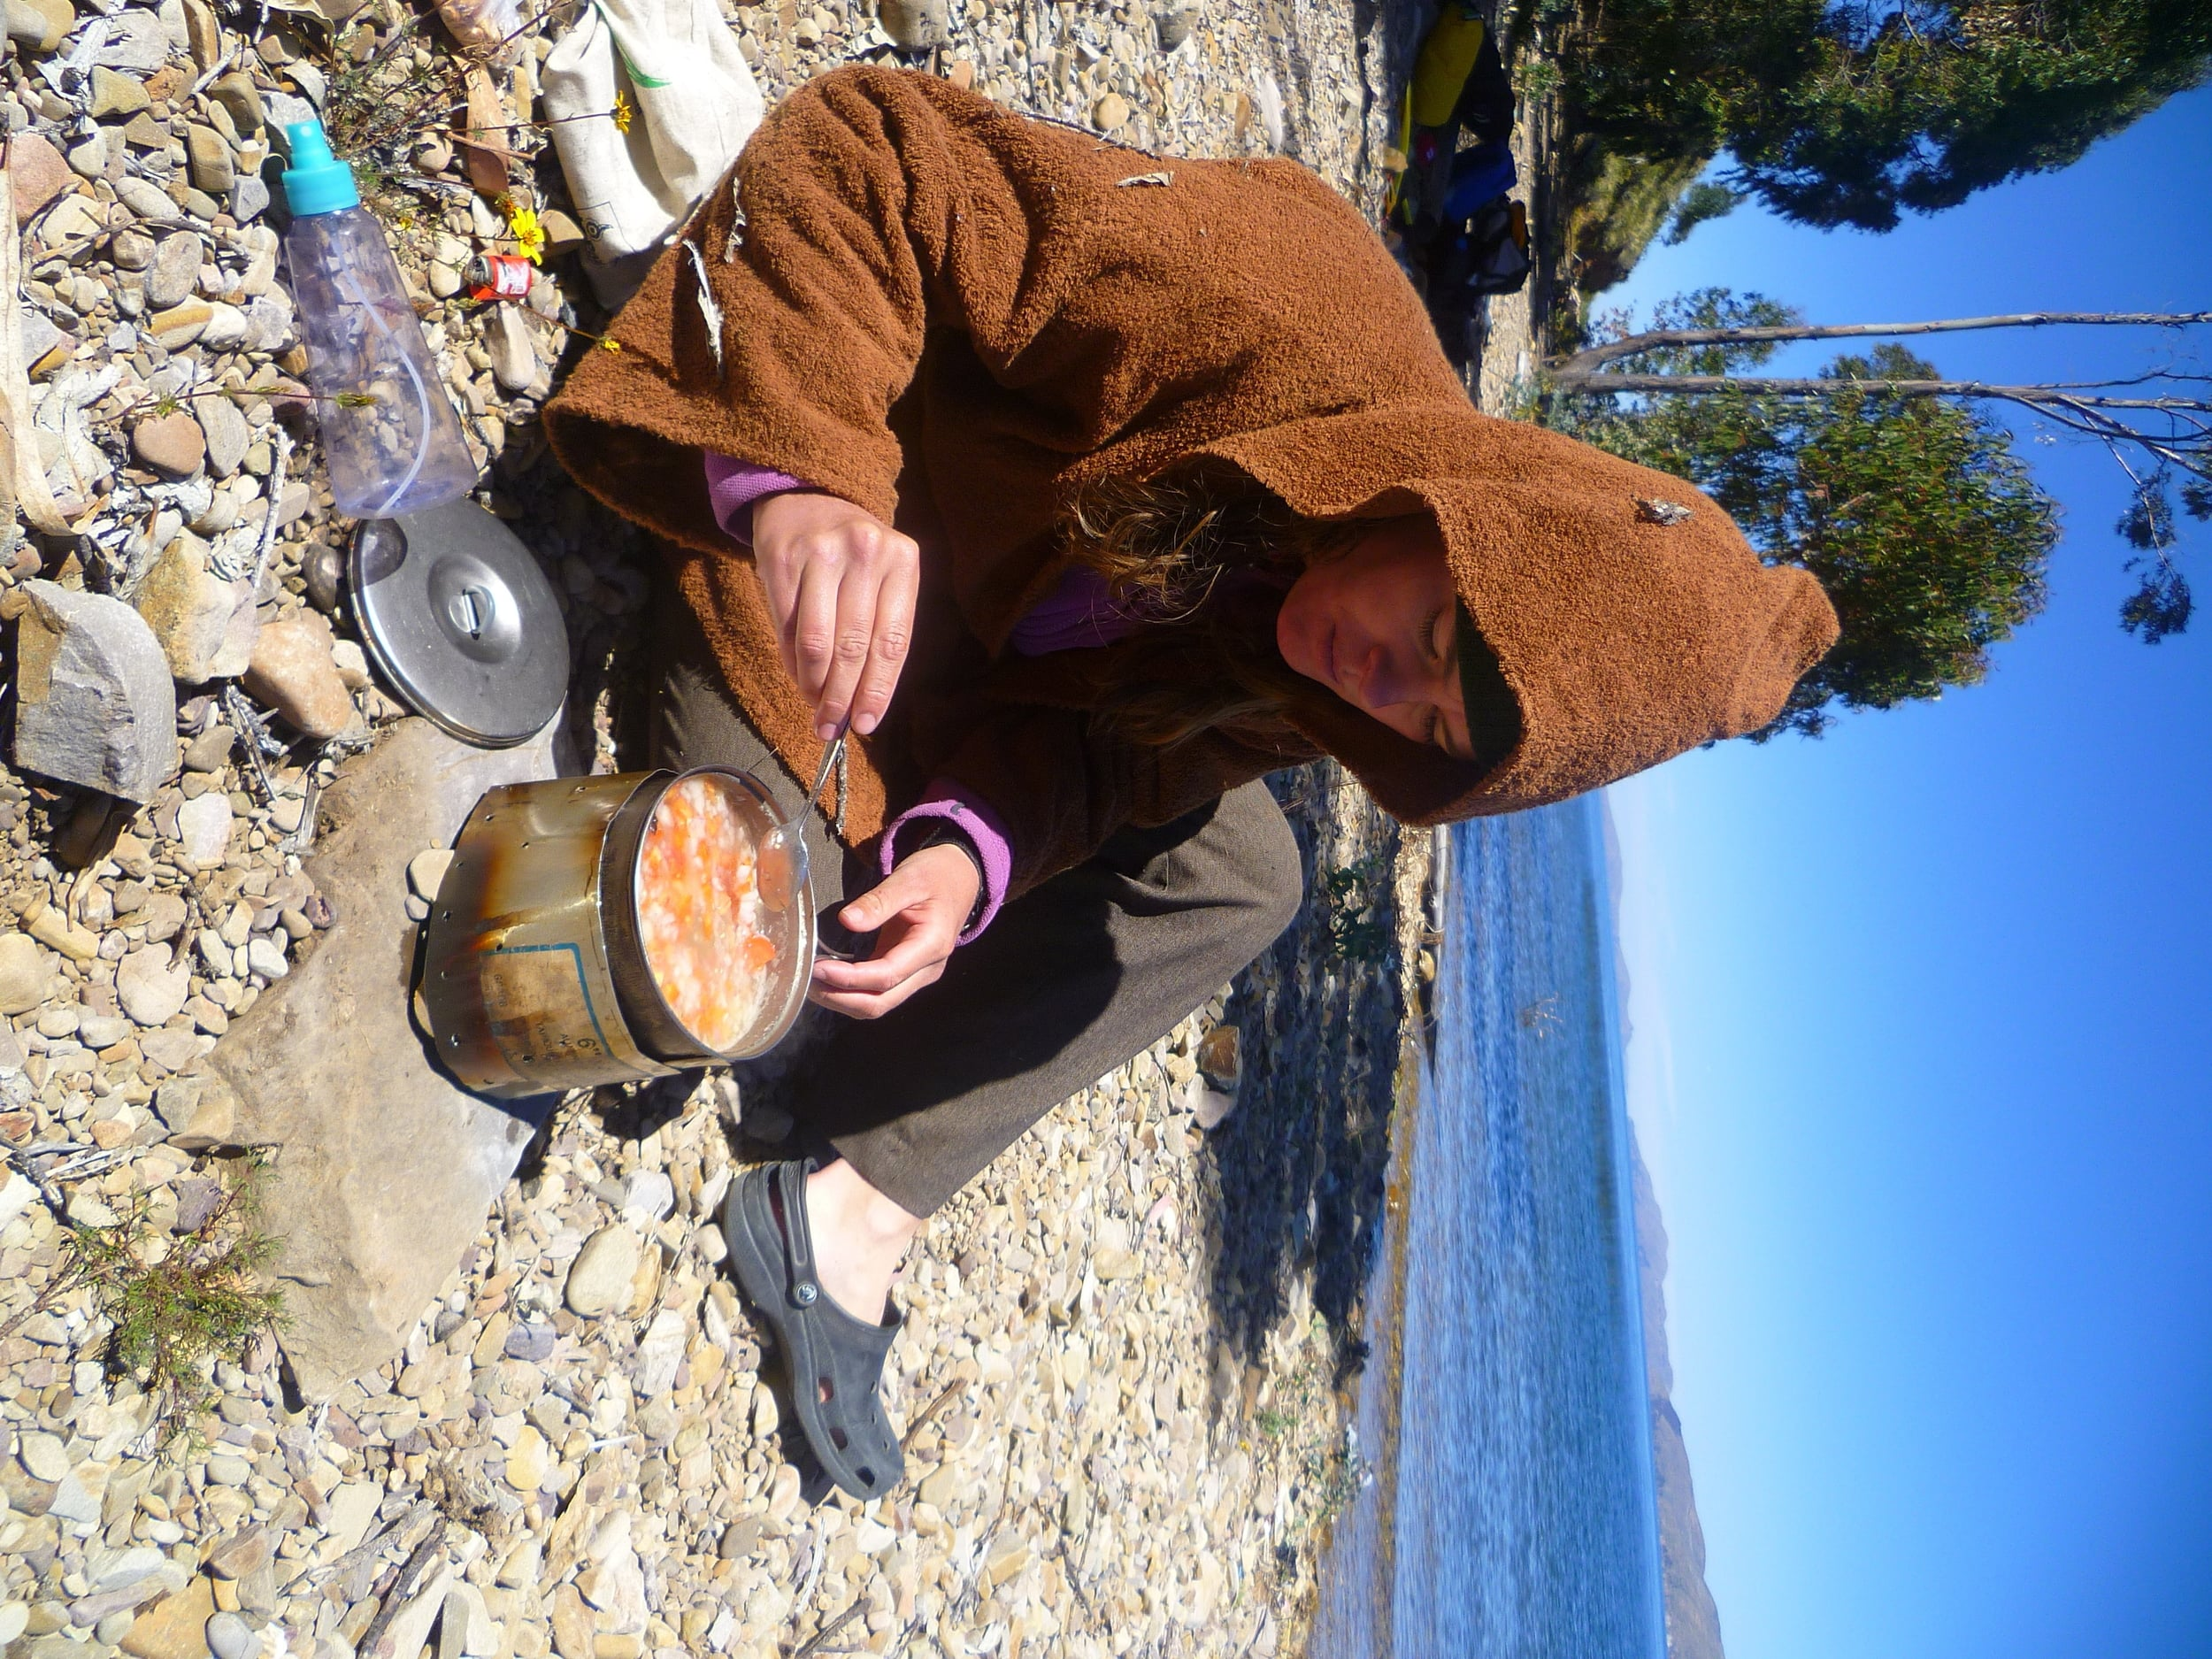 To cope with the cold, we wear 'awesome' Jedi outfits and cook hot lunches on the beach.